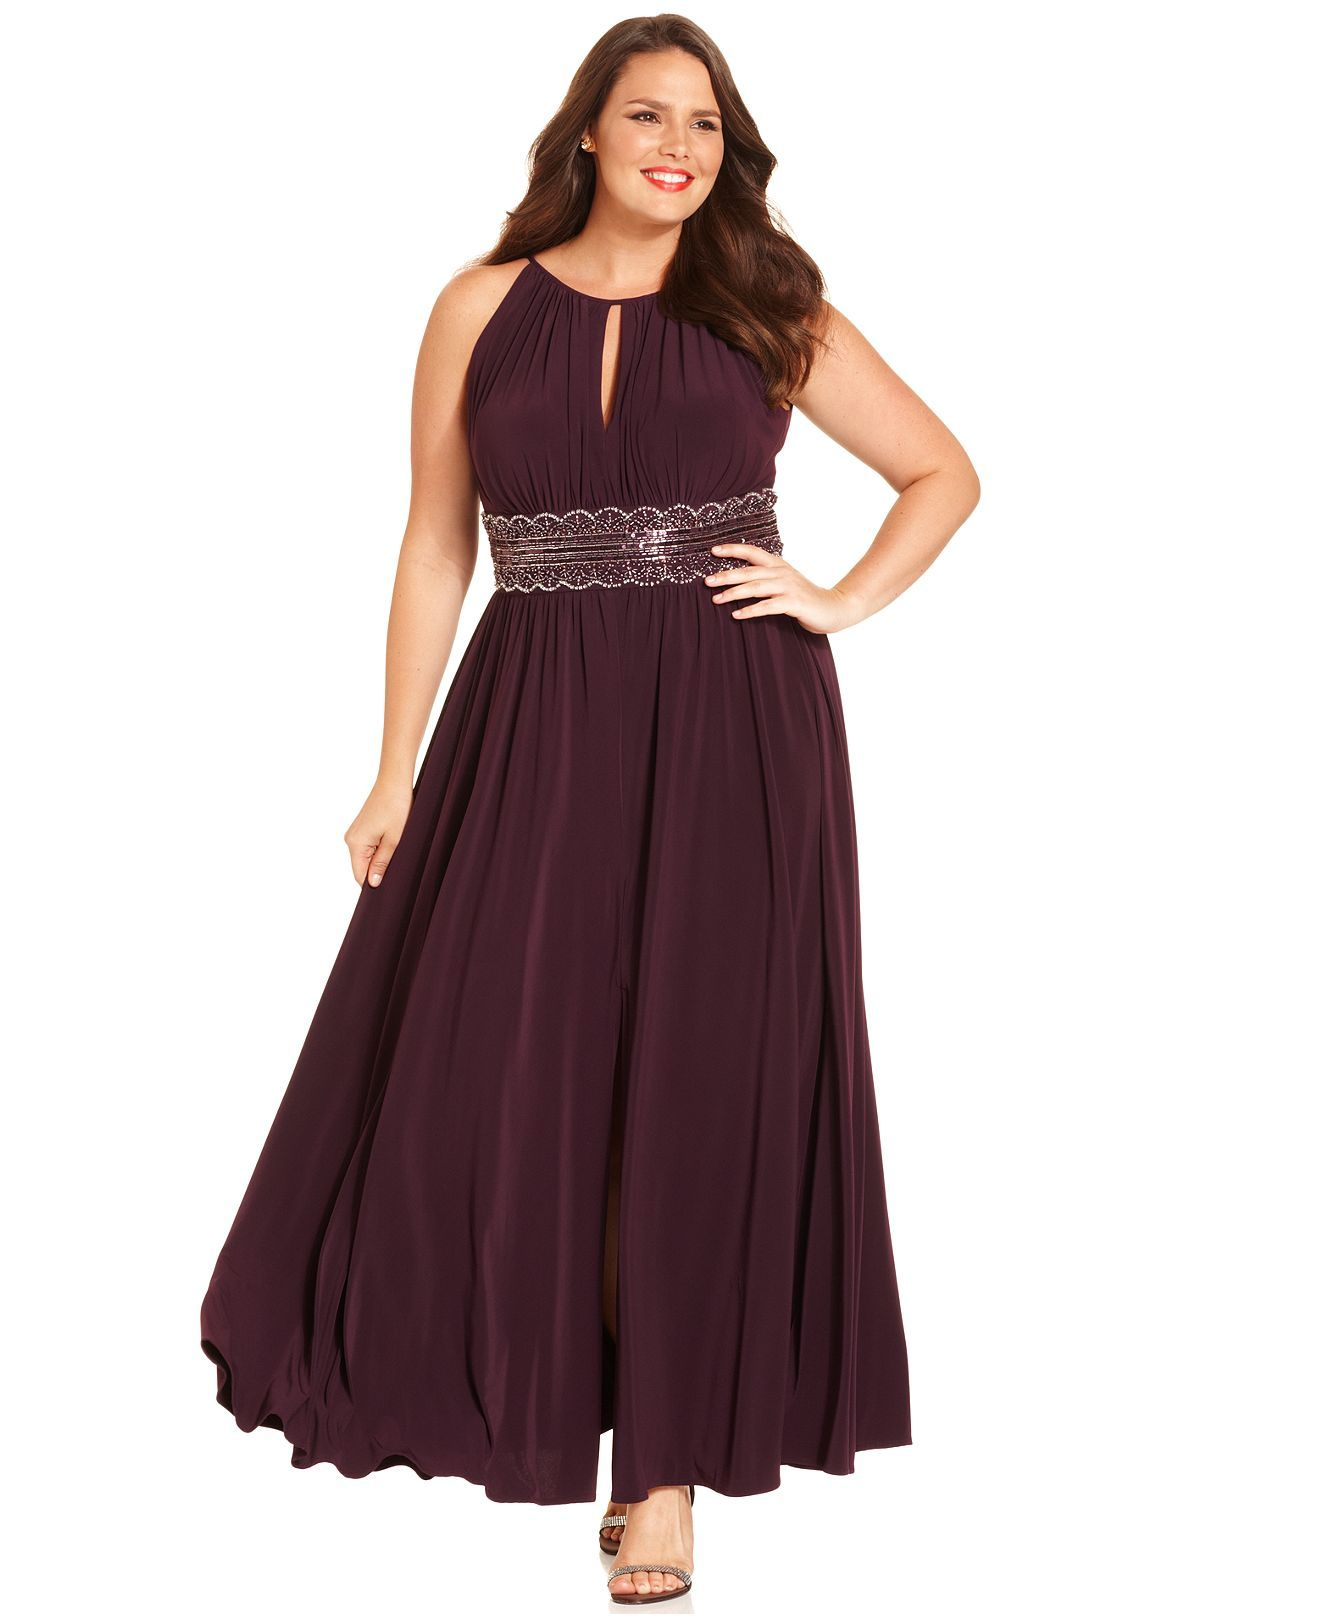 R richards plus size dress sleeveless beaded evening gown plus clothes ombrellifo Images